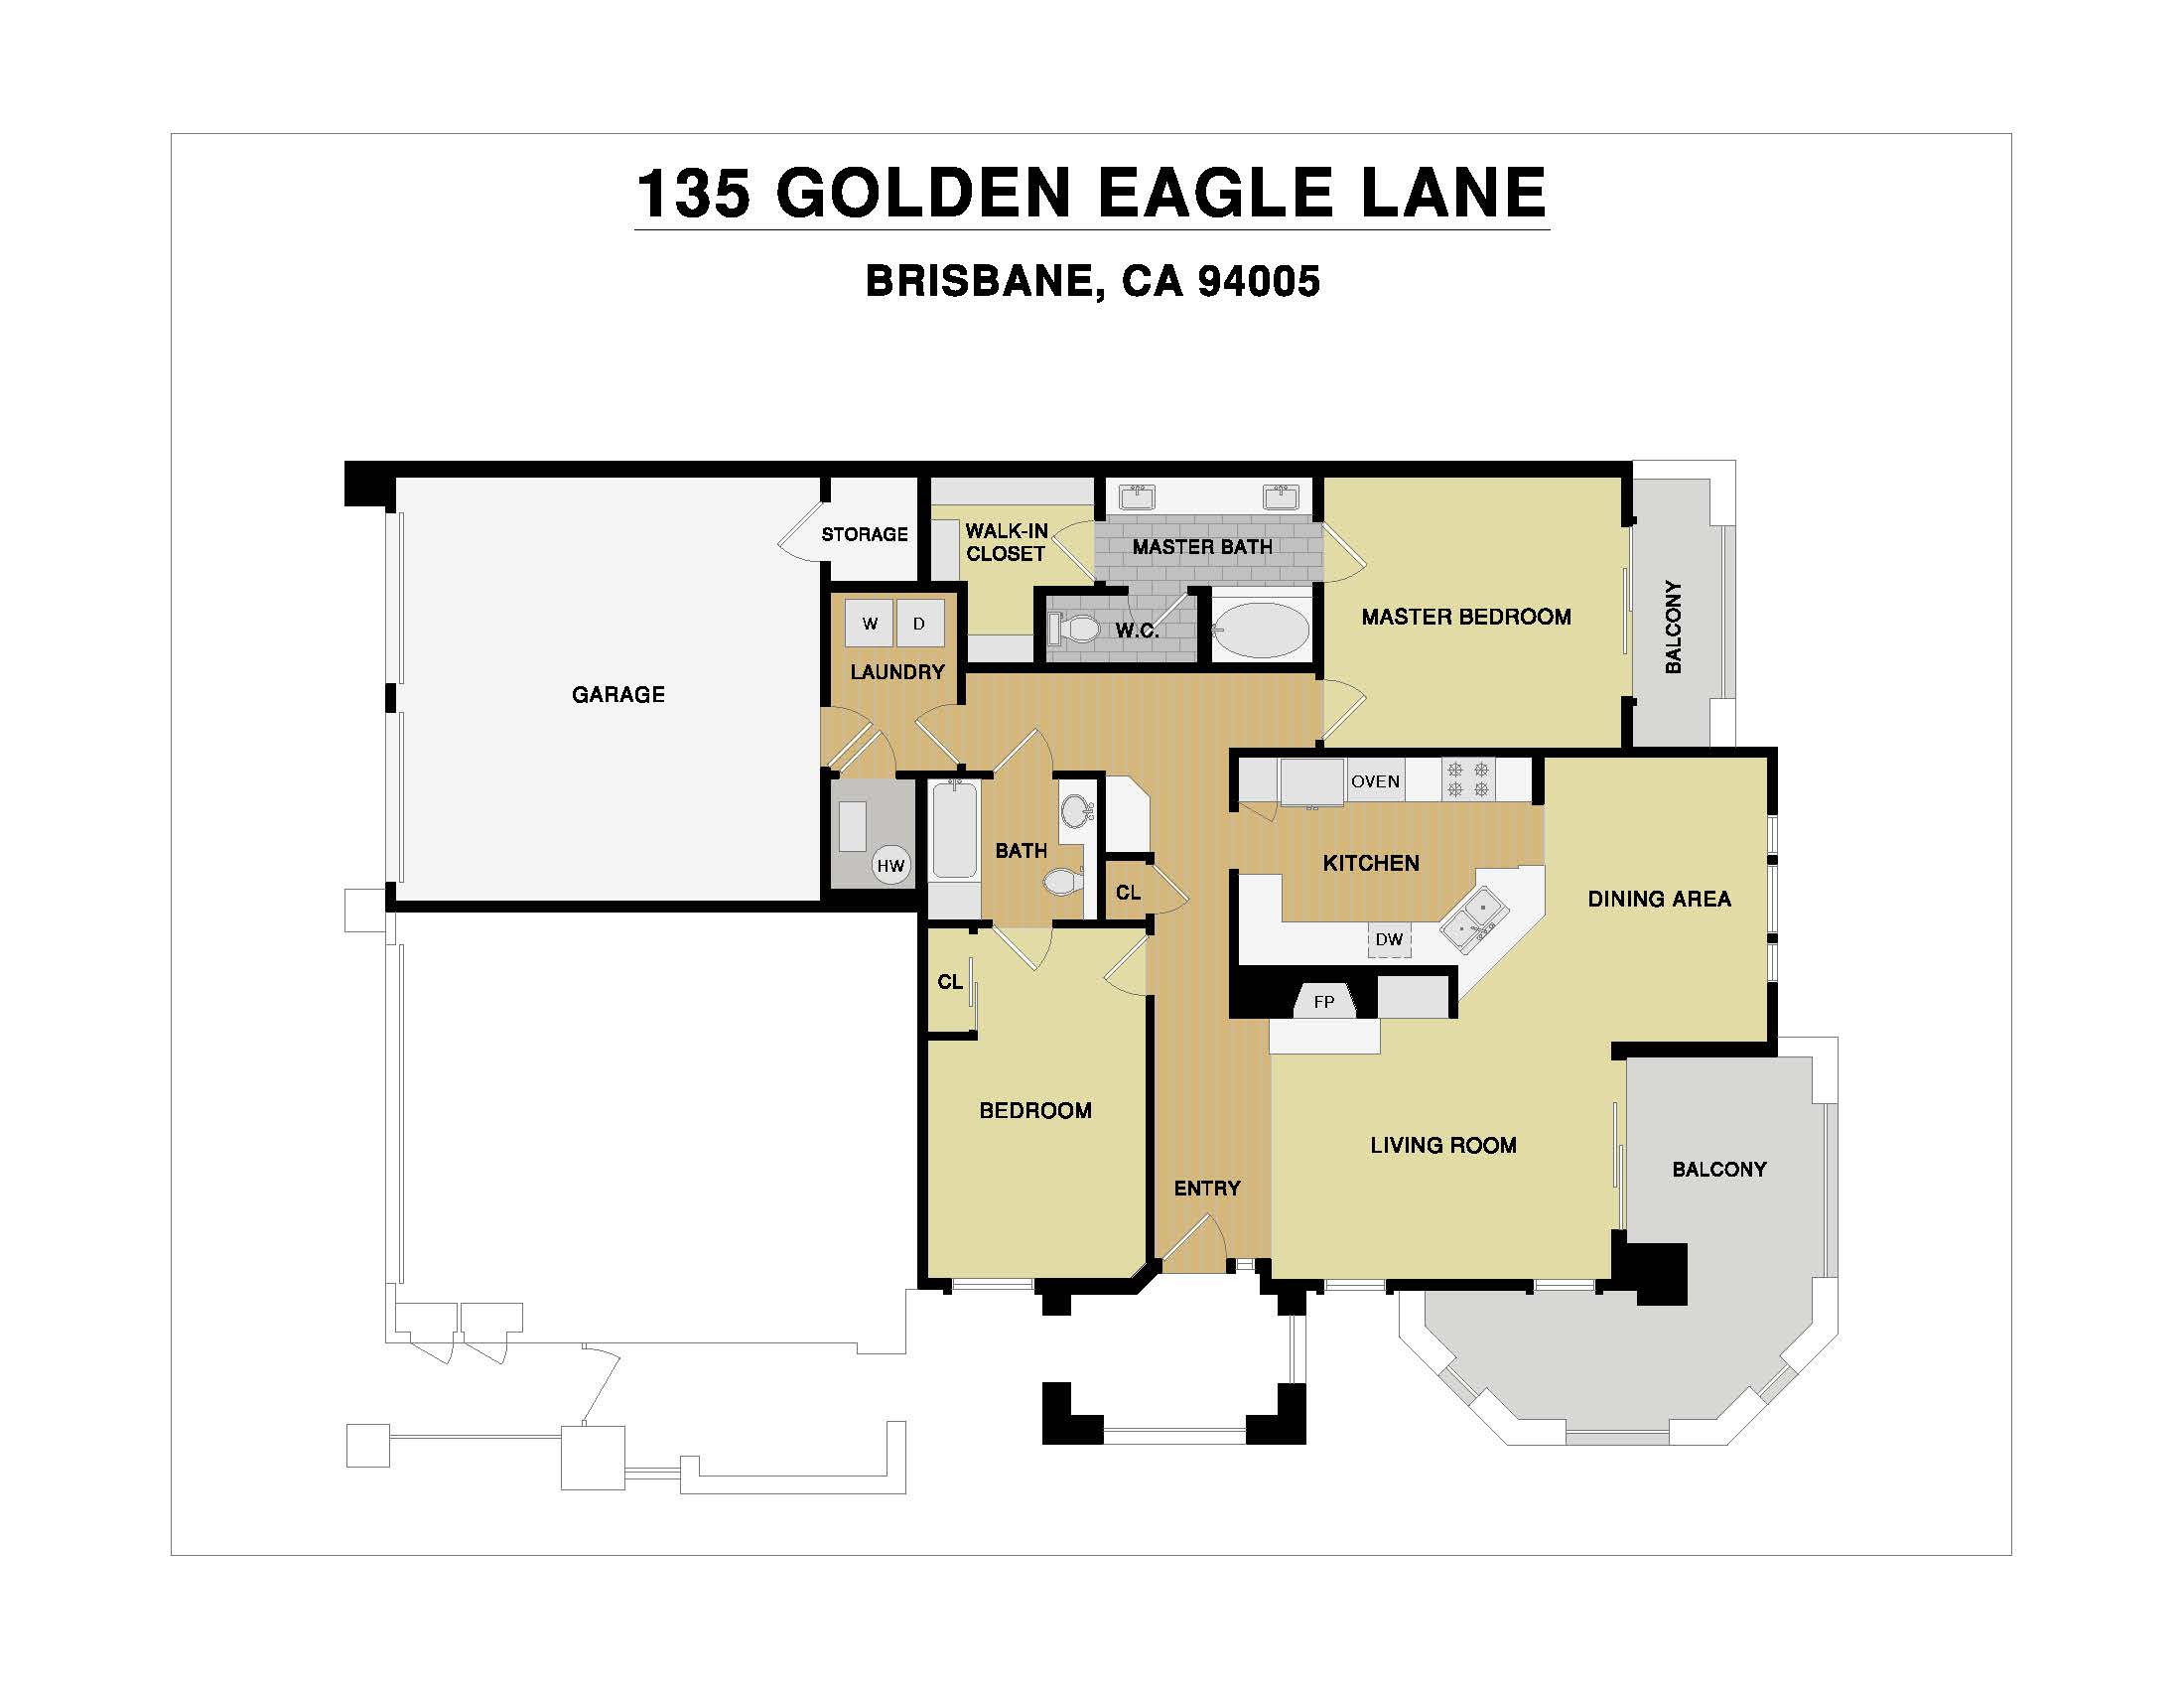 135 Golden Eagle Lane OHD Color_jpg.jpg